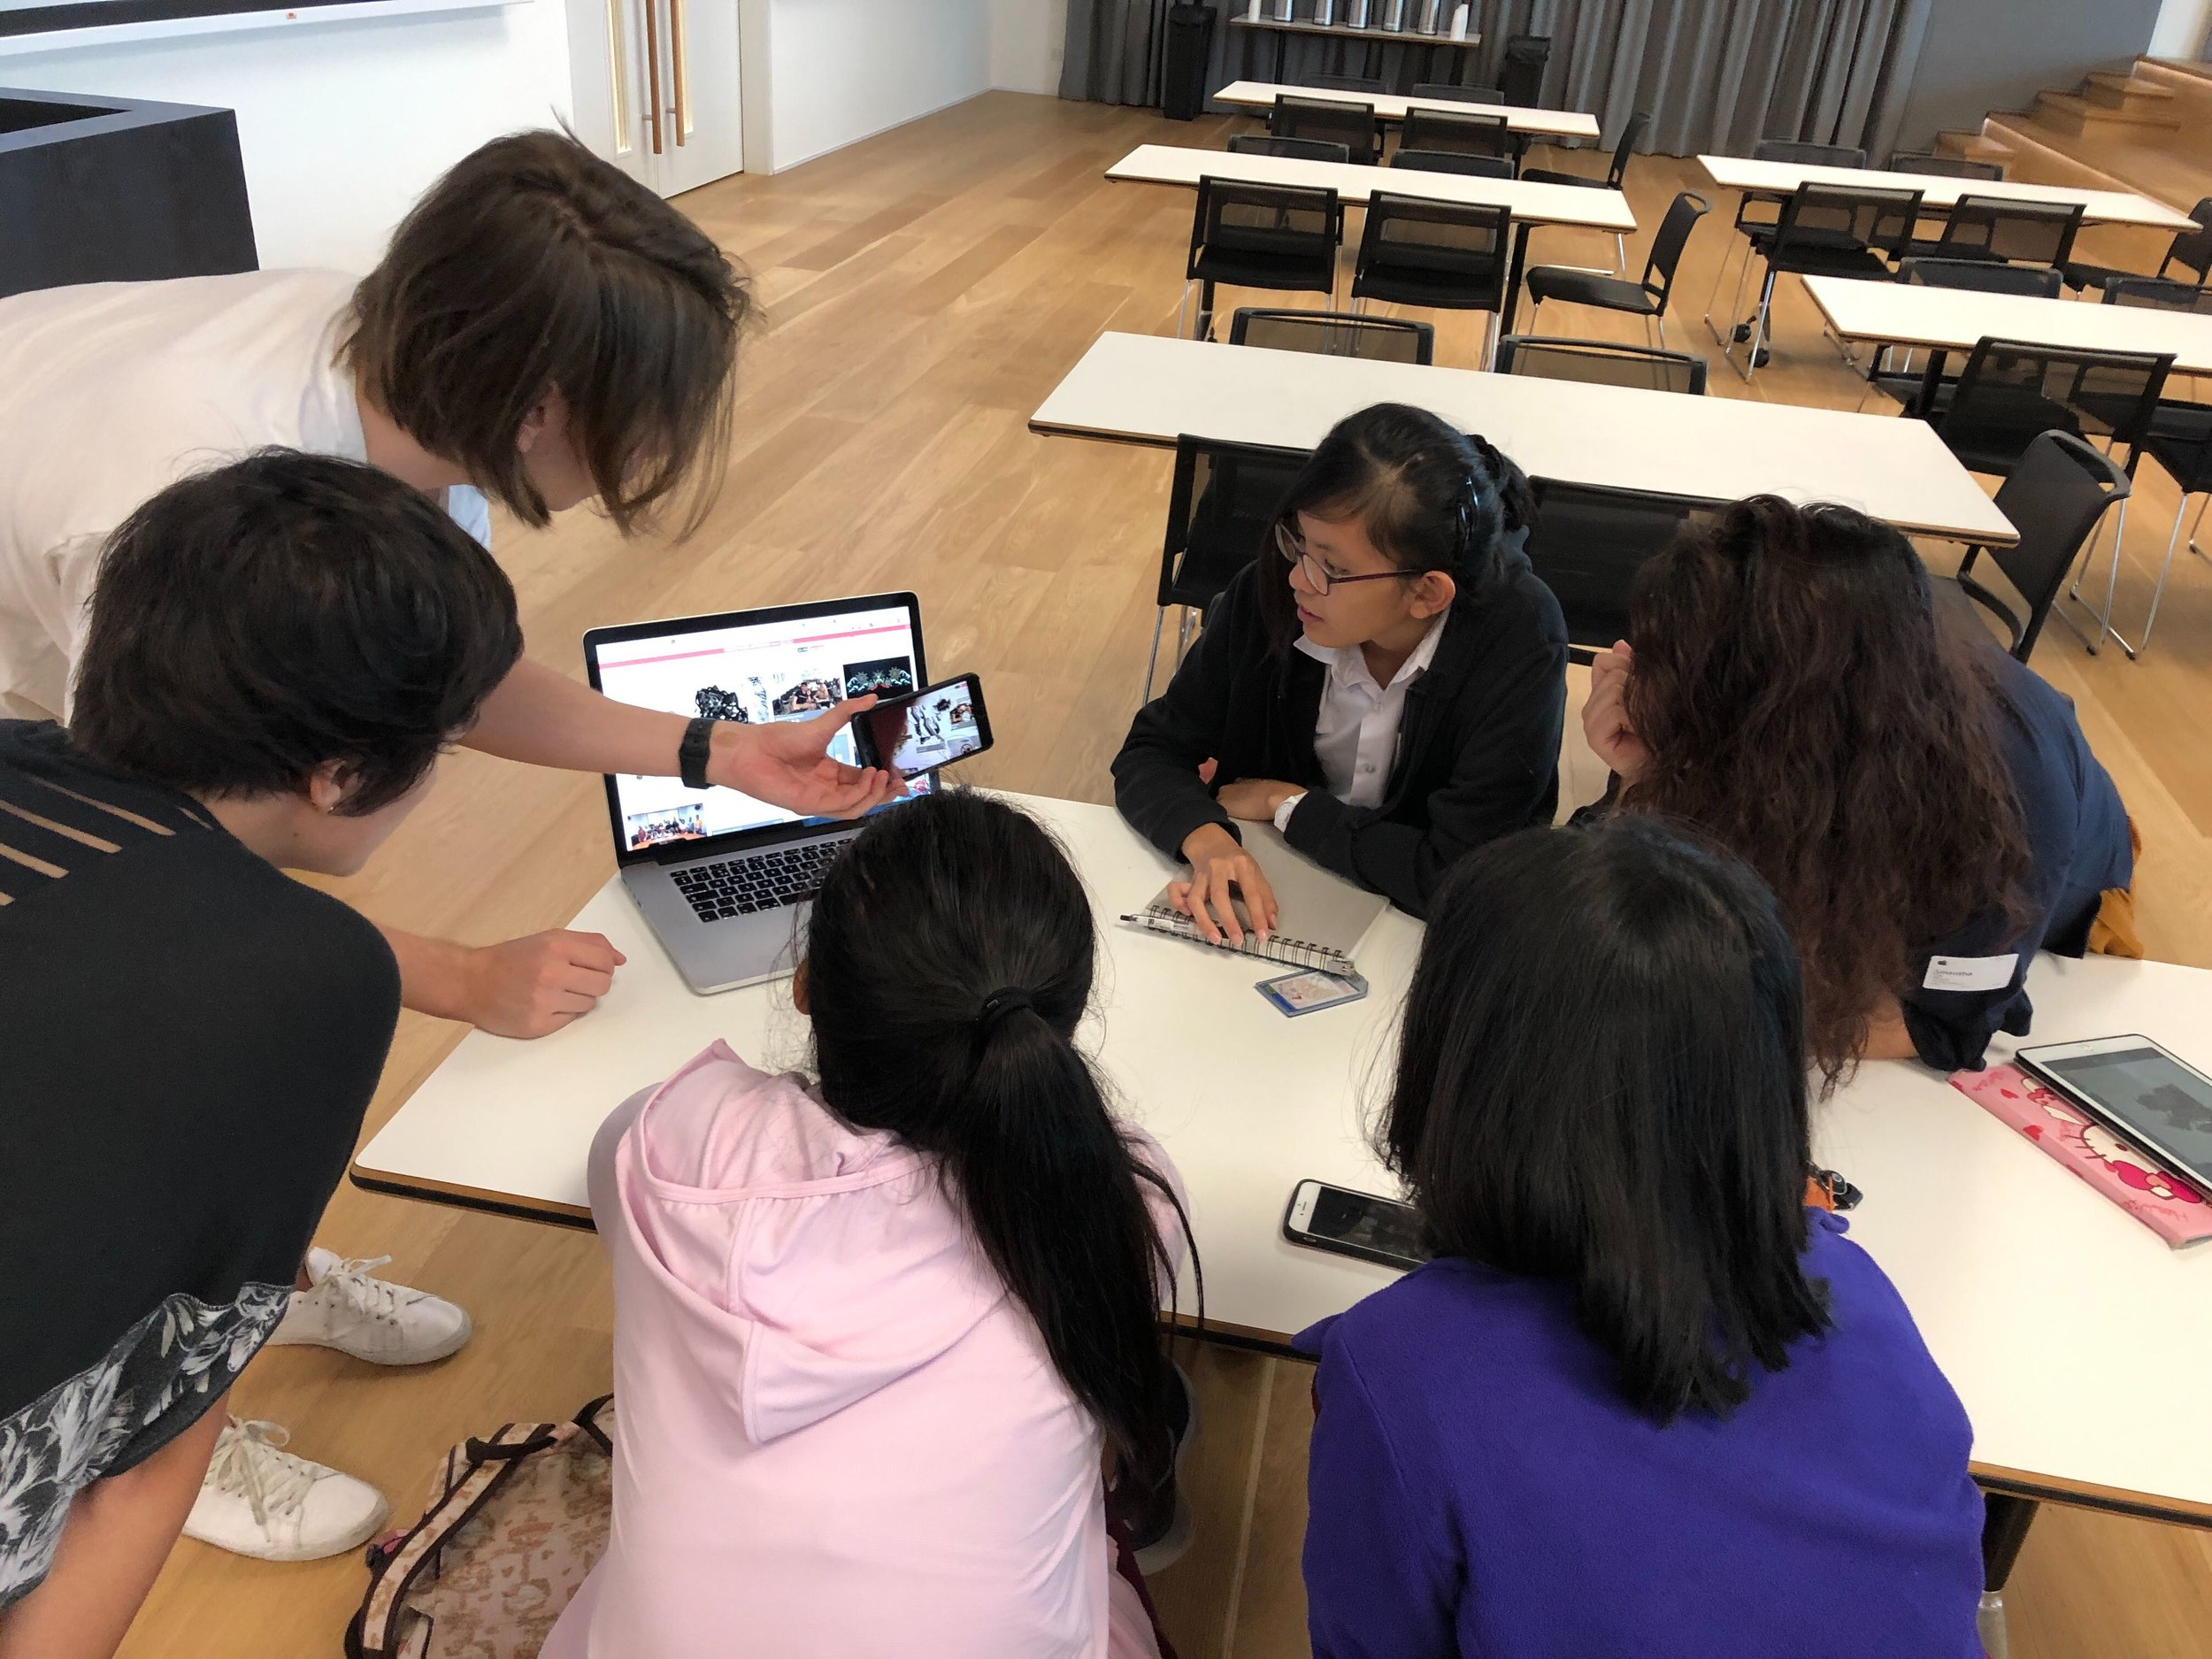 Our team demonstrating the use of Augmented Reality (AR) to the students.